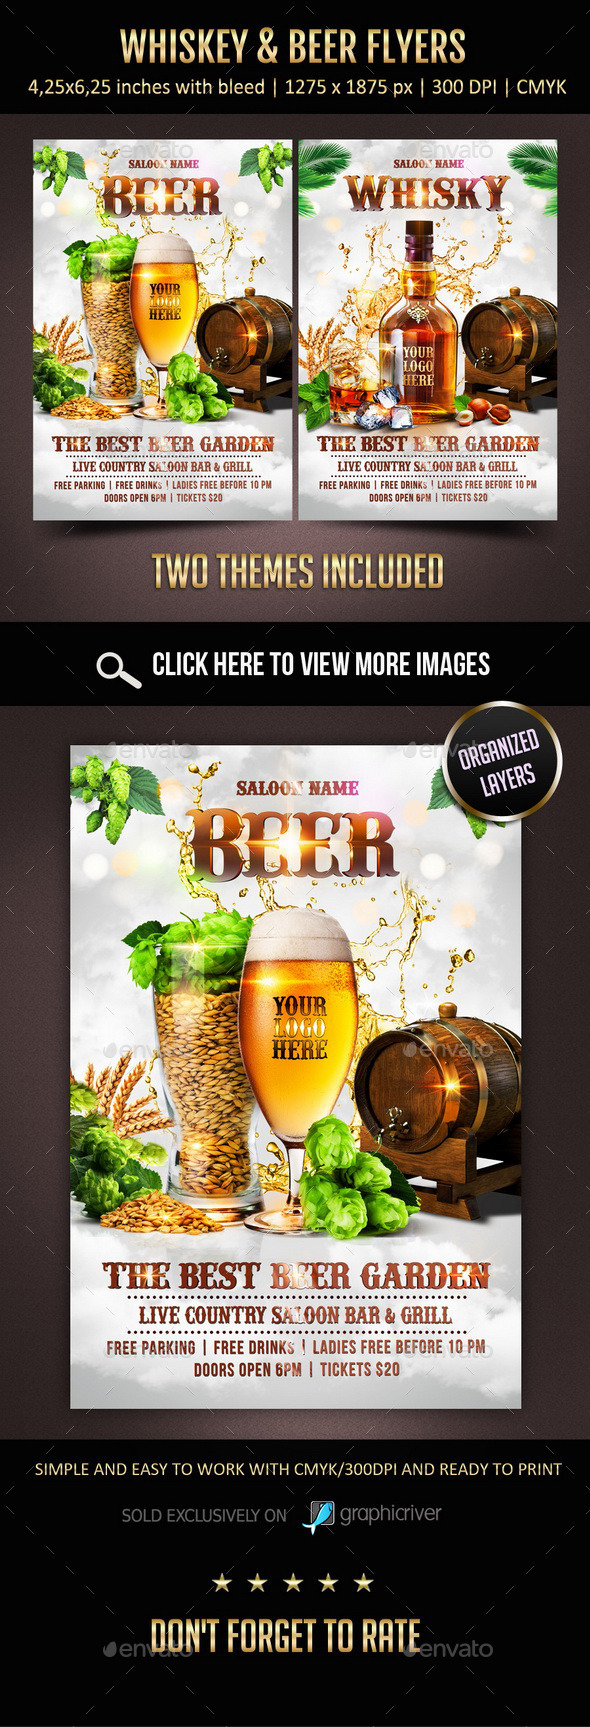 GraphicRiver Whiskey & Beer Flyers 11546799